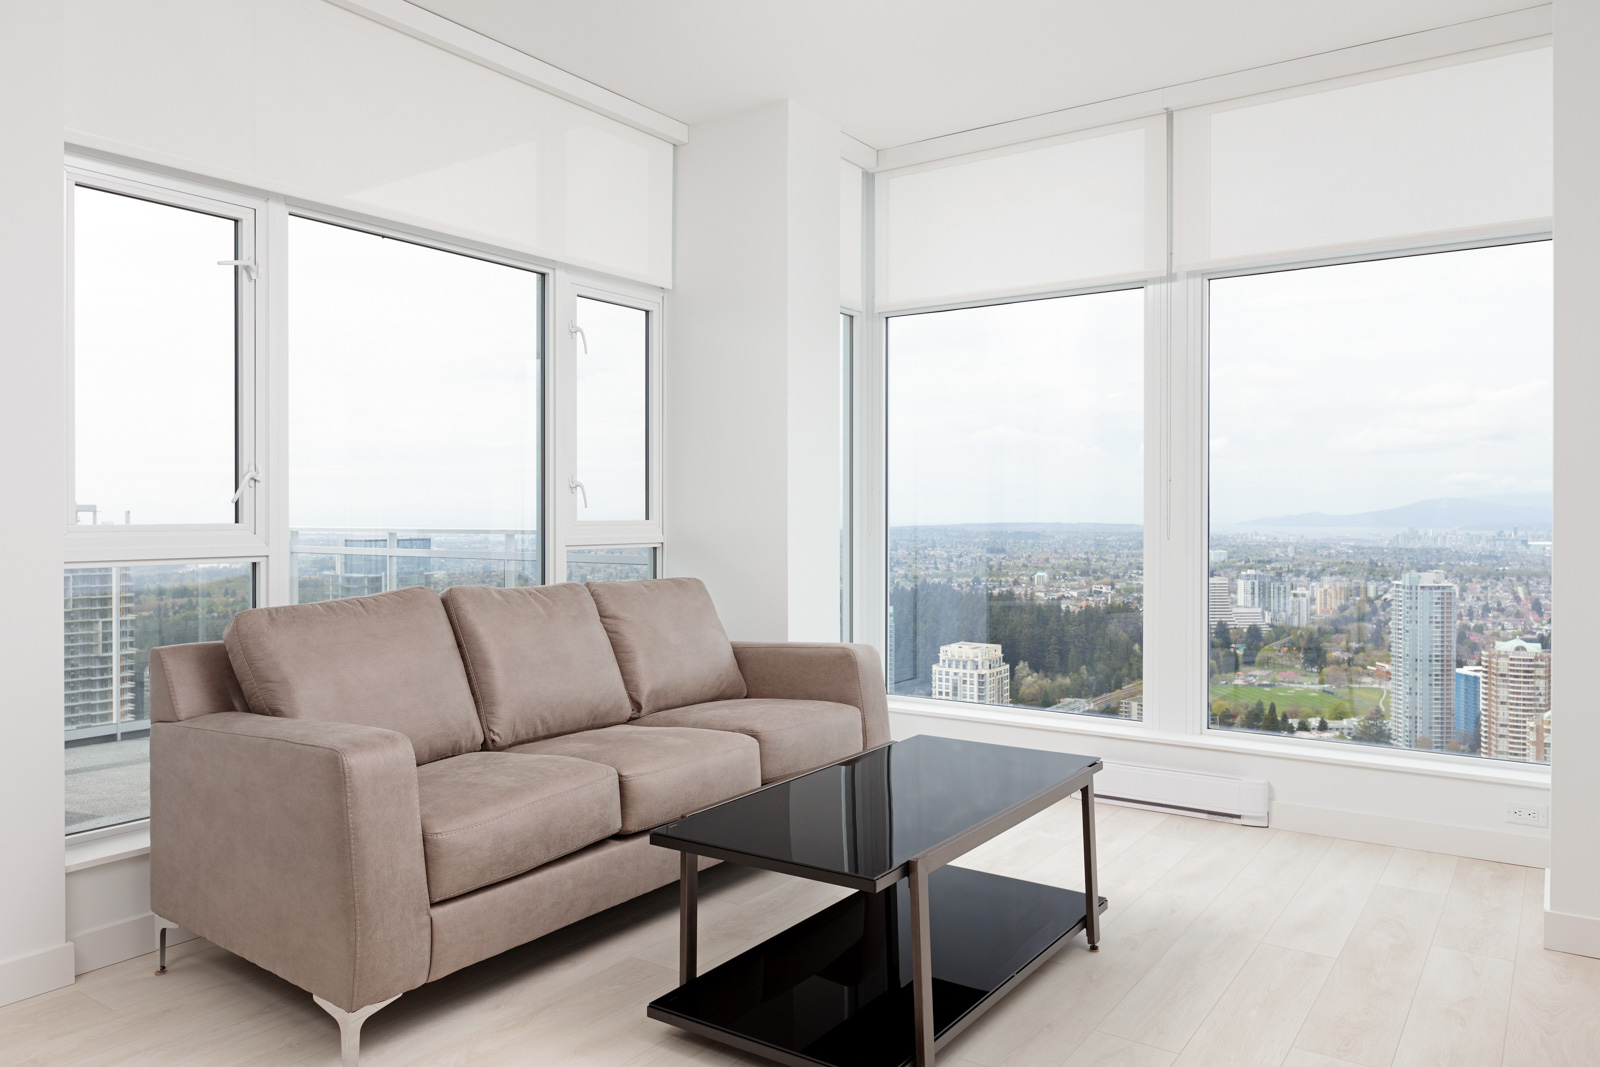 Living room in Metrotown condo